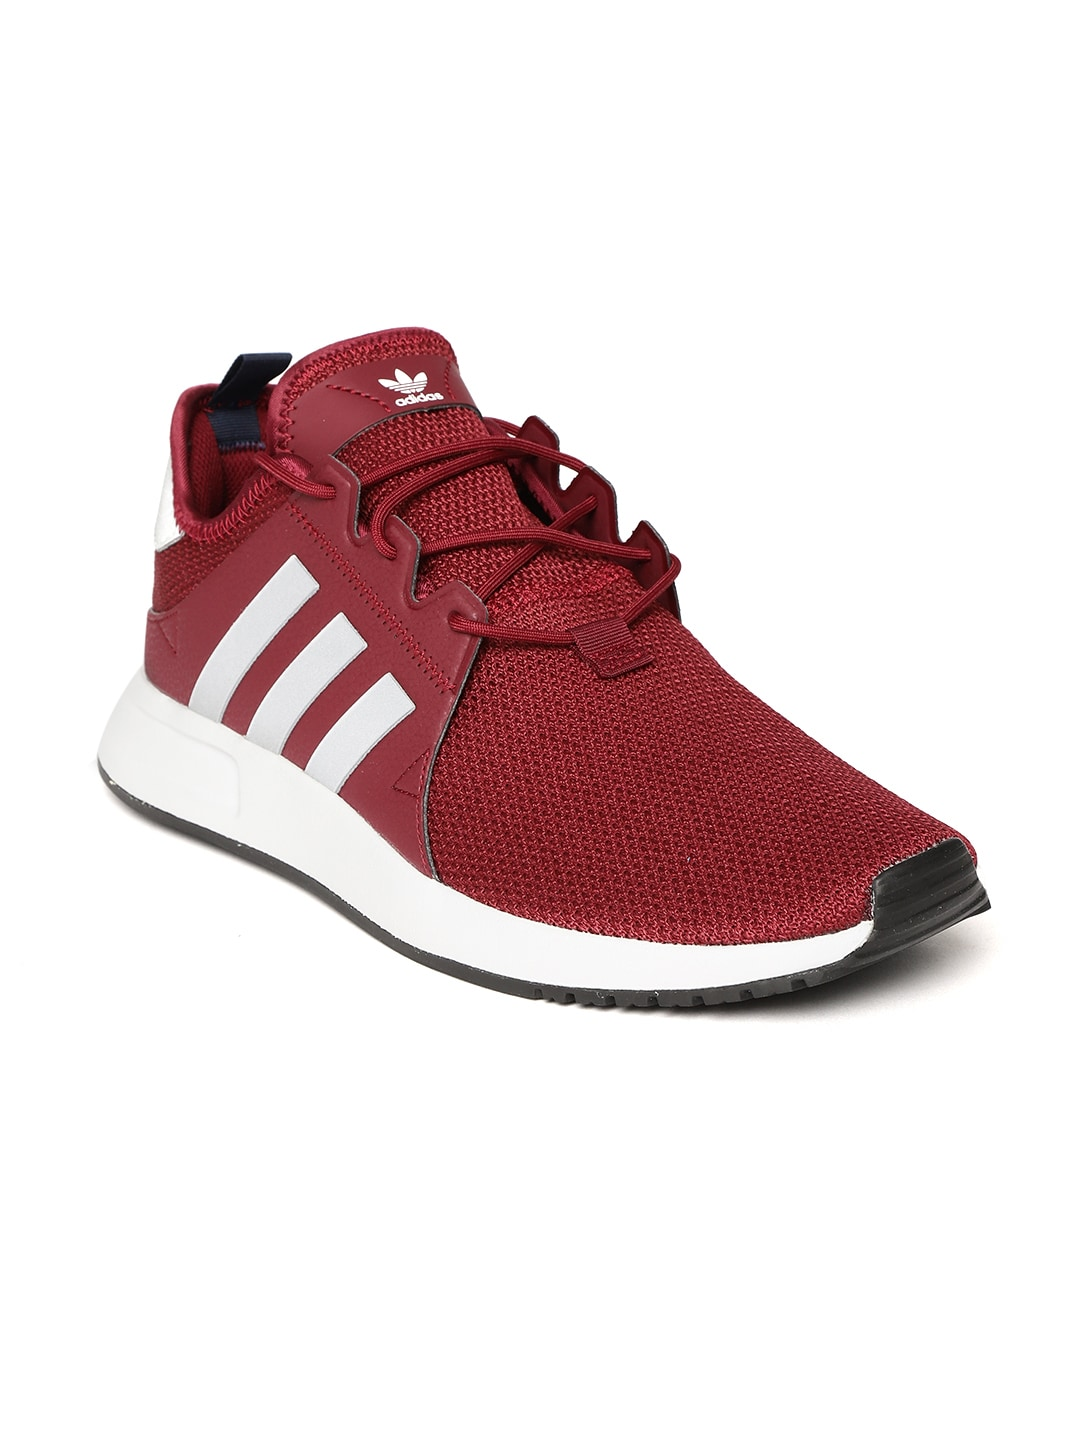 buy popular 34c9b 740a2 Adidas Shoes - Buy Adidas Shoes for Men   Women Online - Myntra